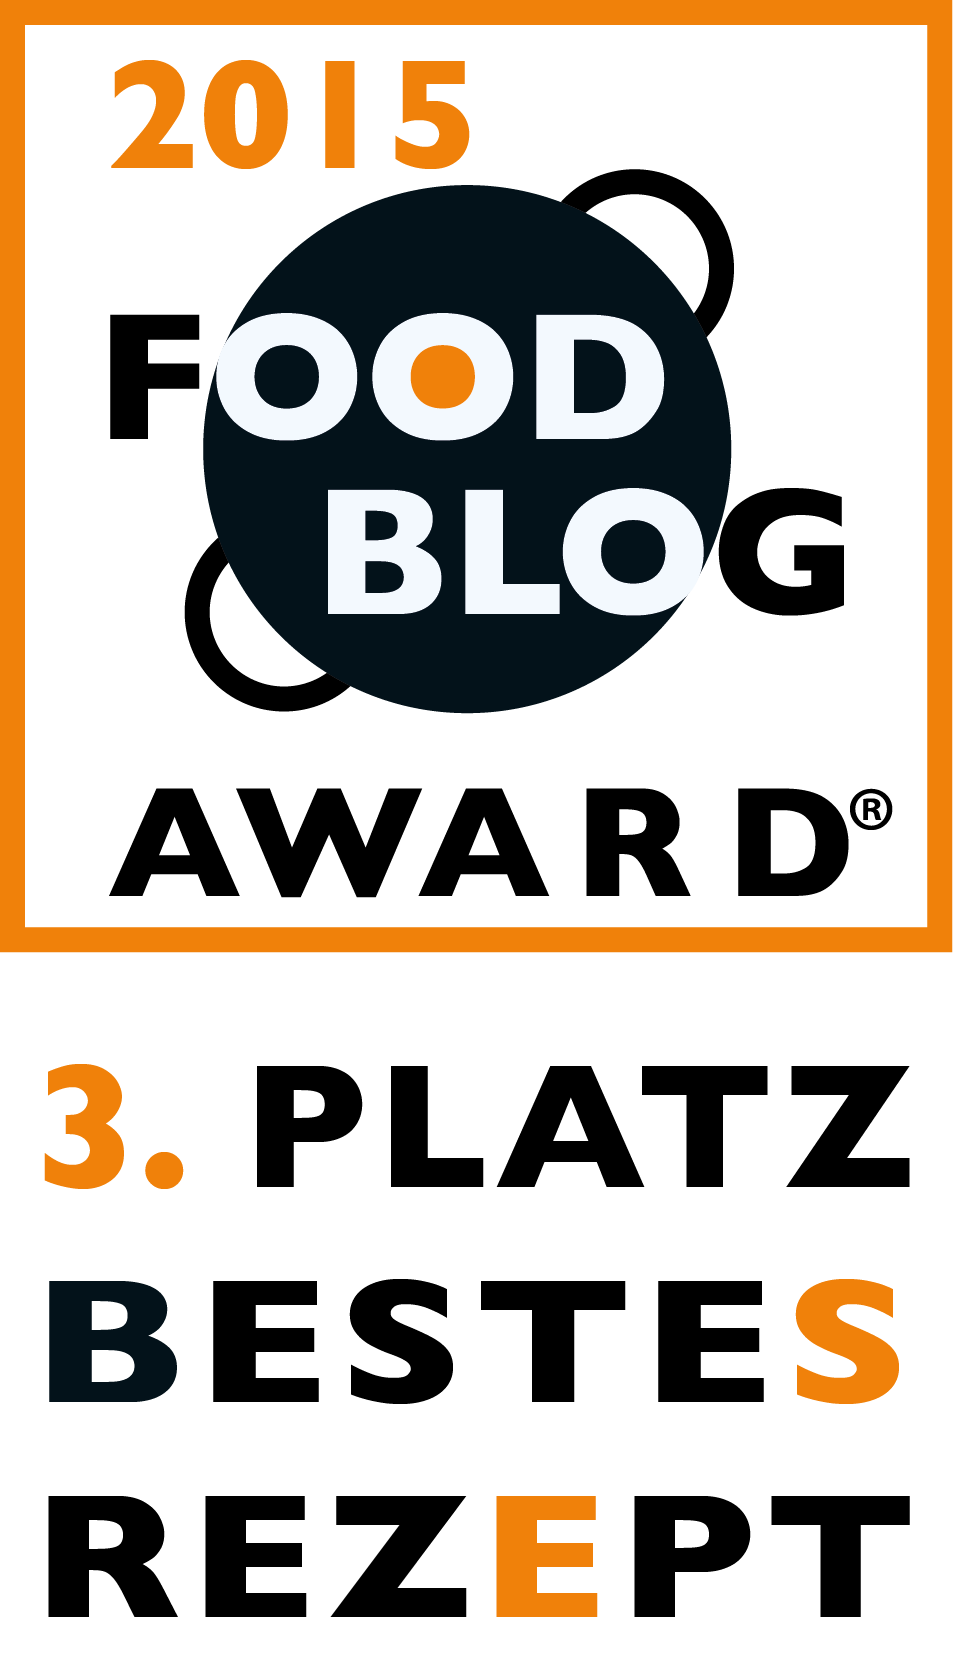 Food Blog Award 2015